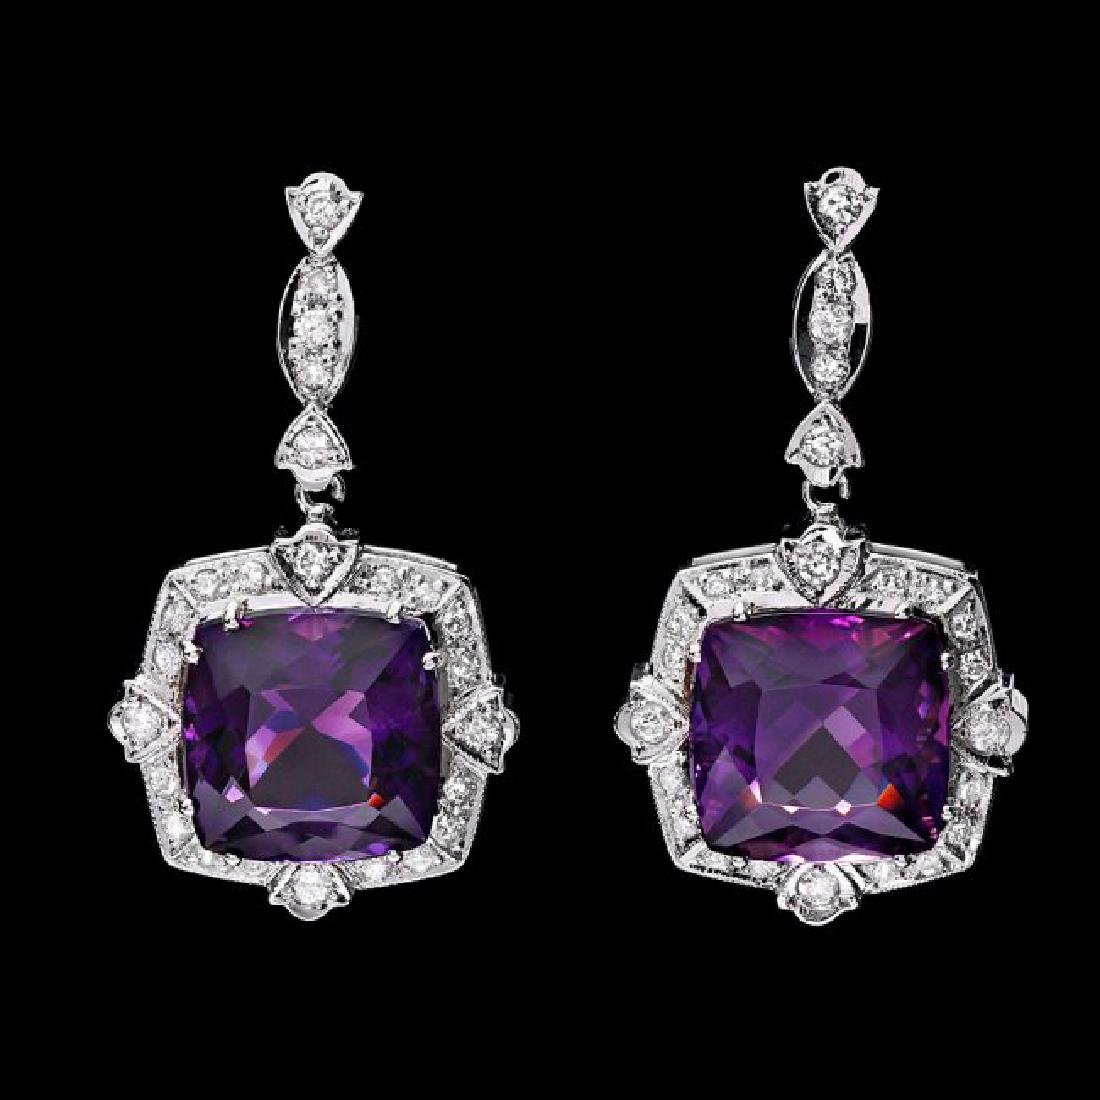 14k Gold 22ct Amethyst 1.75ct Diamond Earrings